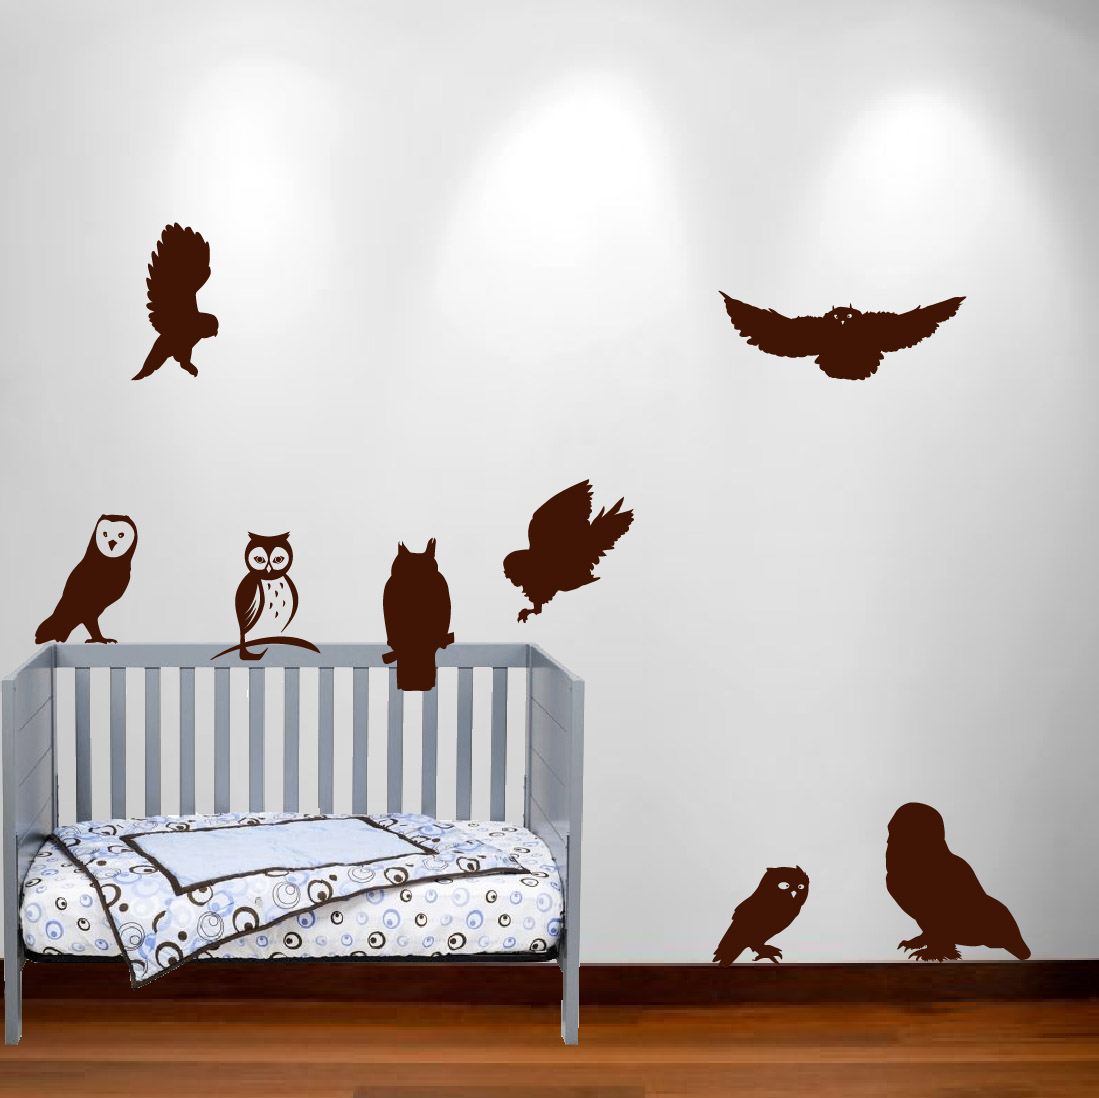 Owl wall decal nursery sticker hunting bird set 1251 nursery owl decal set 1251g amipublicfo Choice Image